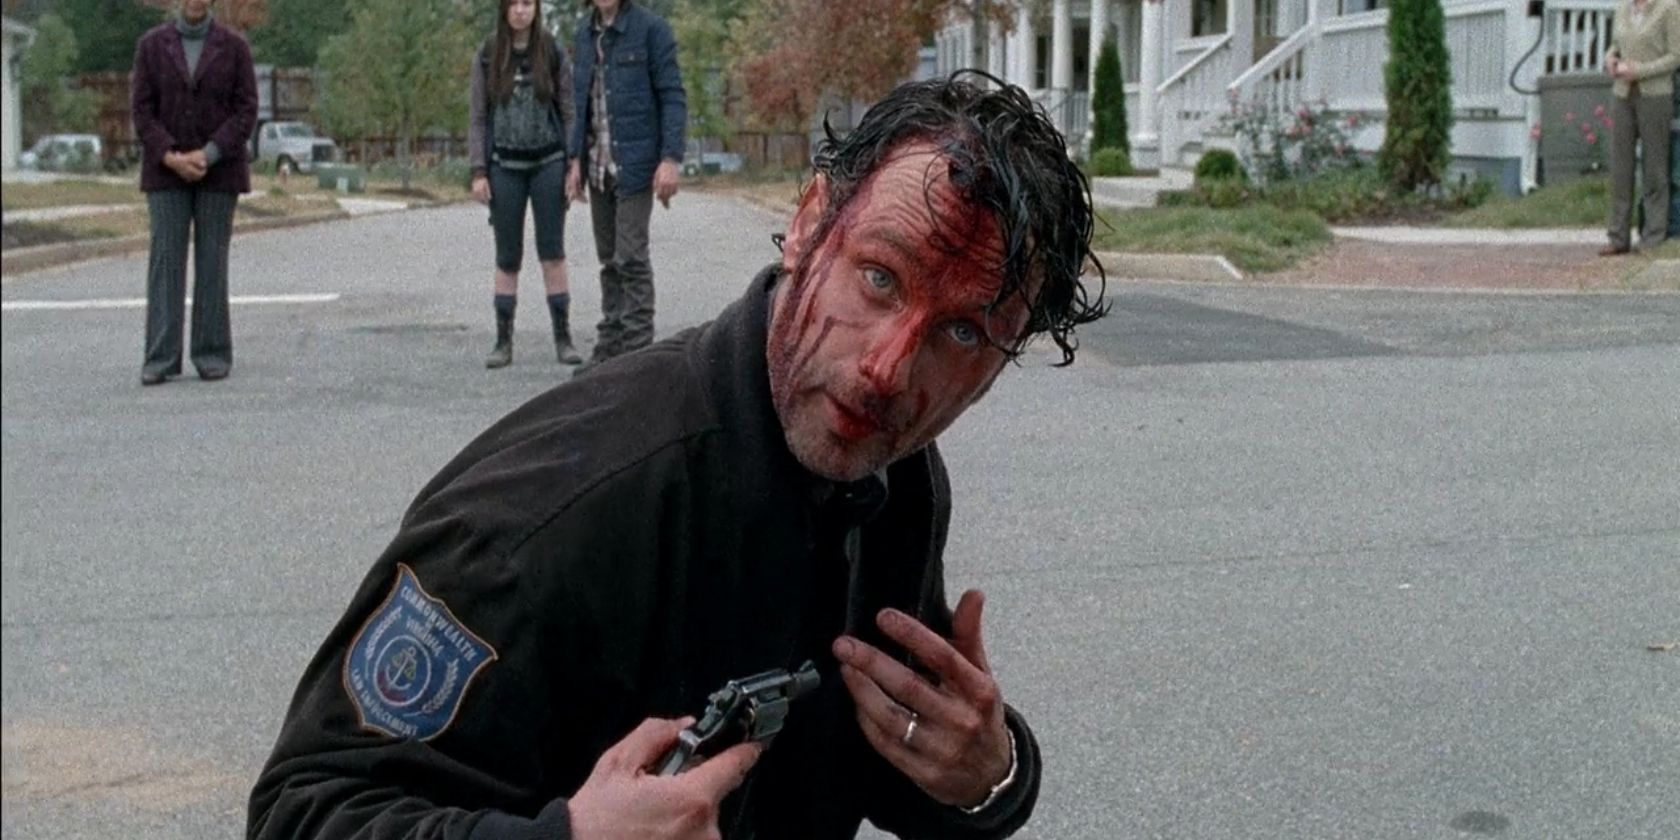 The Walking Dead Andrew Lincoln: Walking Dead Director Says It 'Will Still Be Great